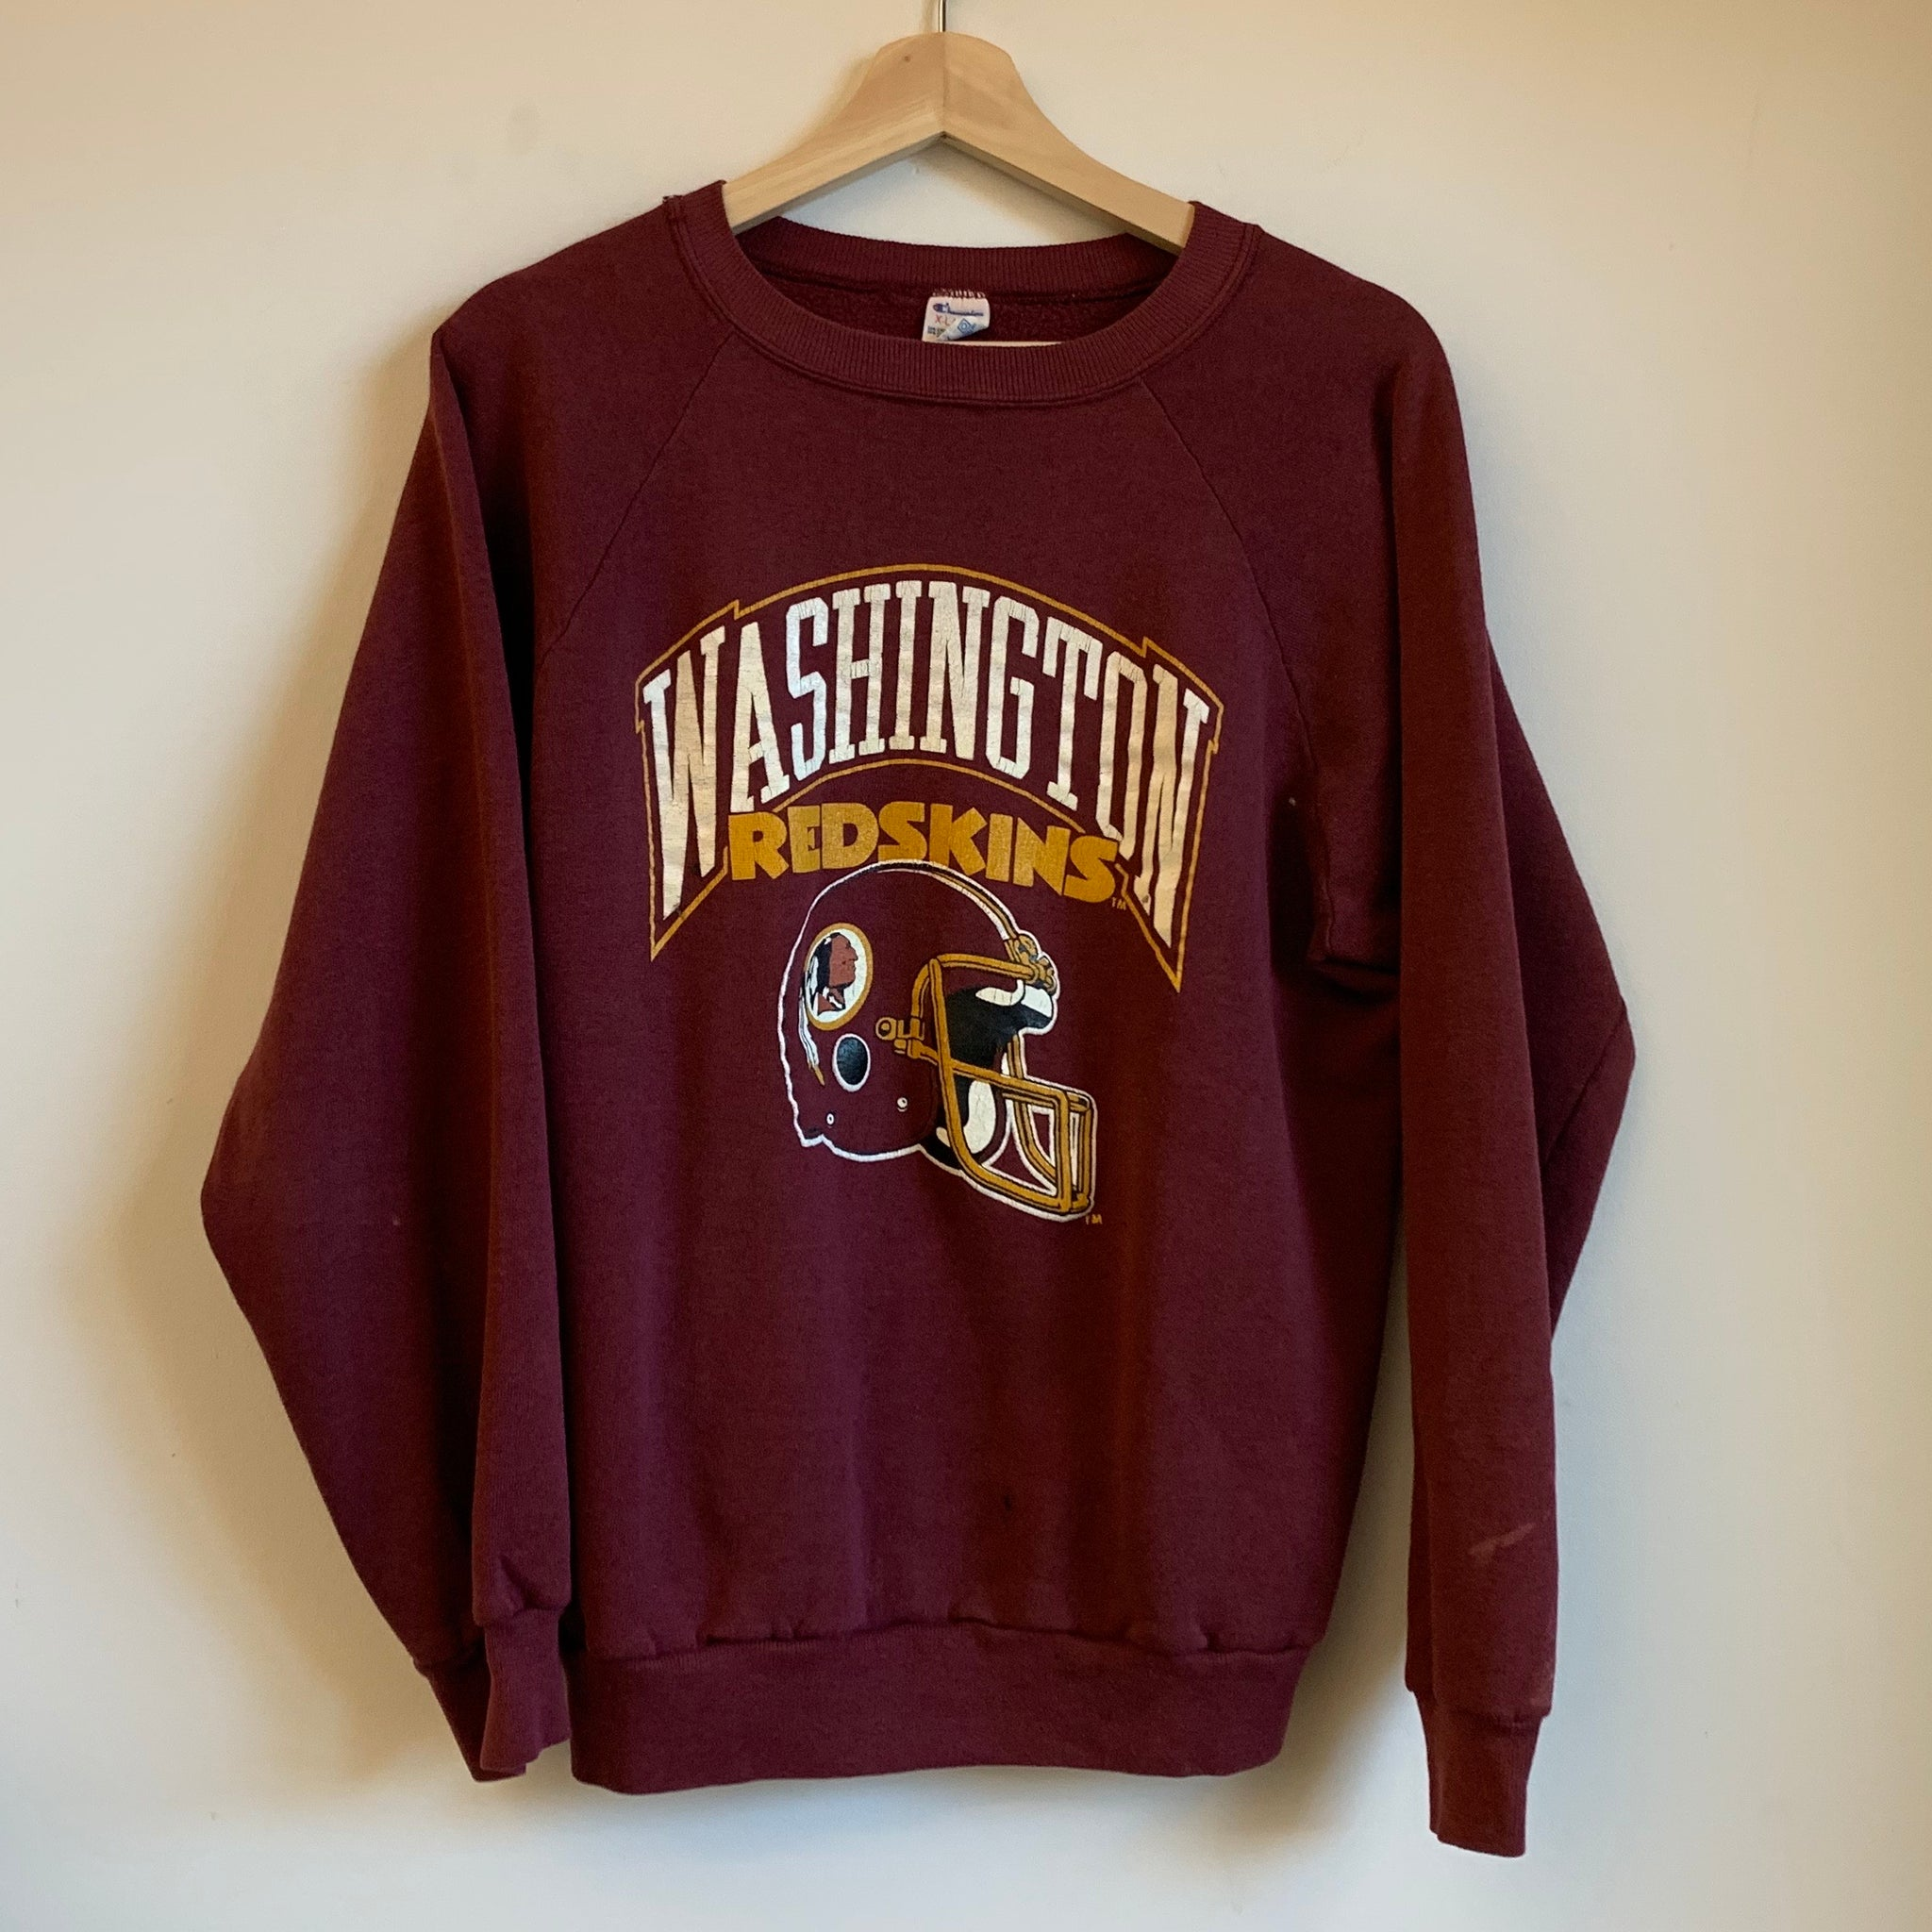 Washington Redskins Burgundy/White/Yellow Crewneck